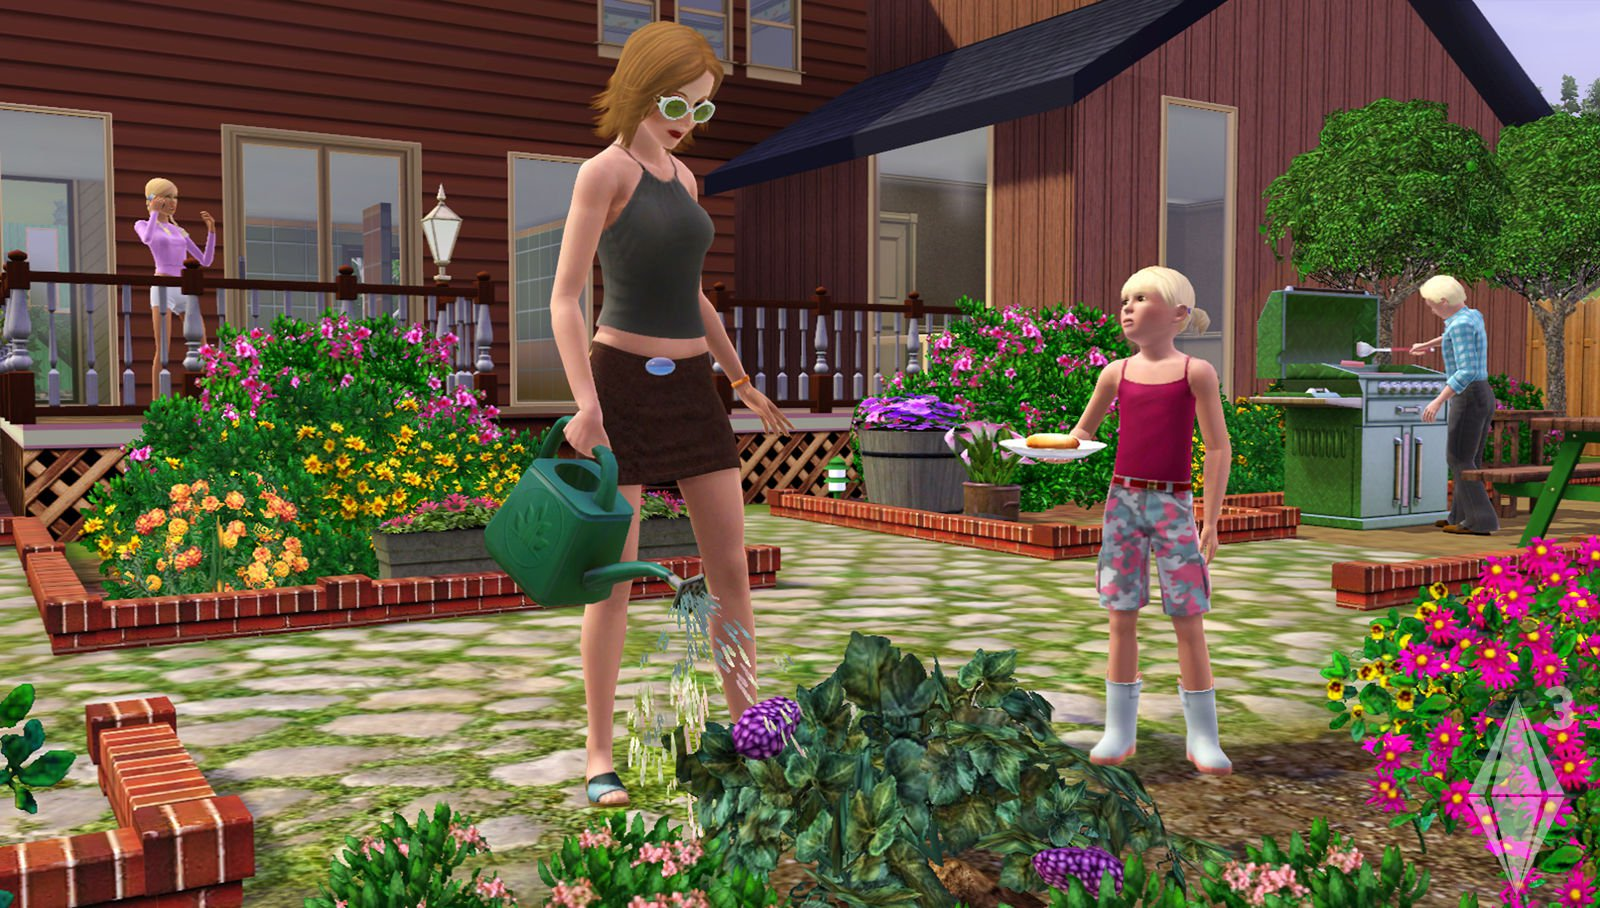 The Sims 3 5